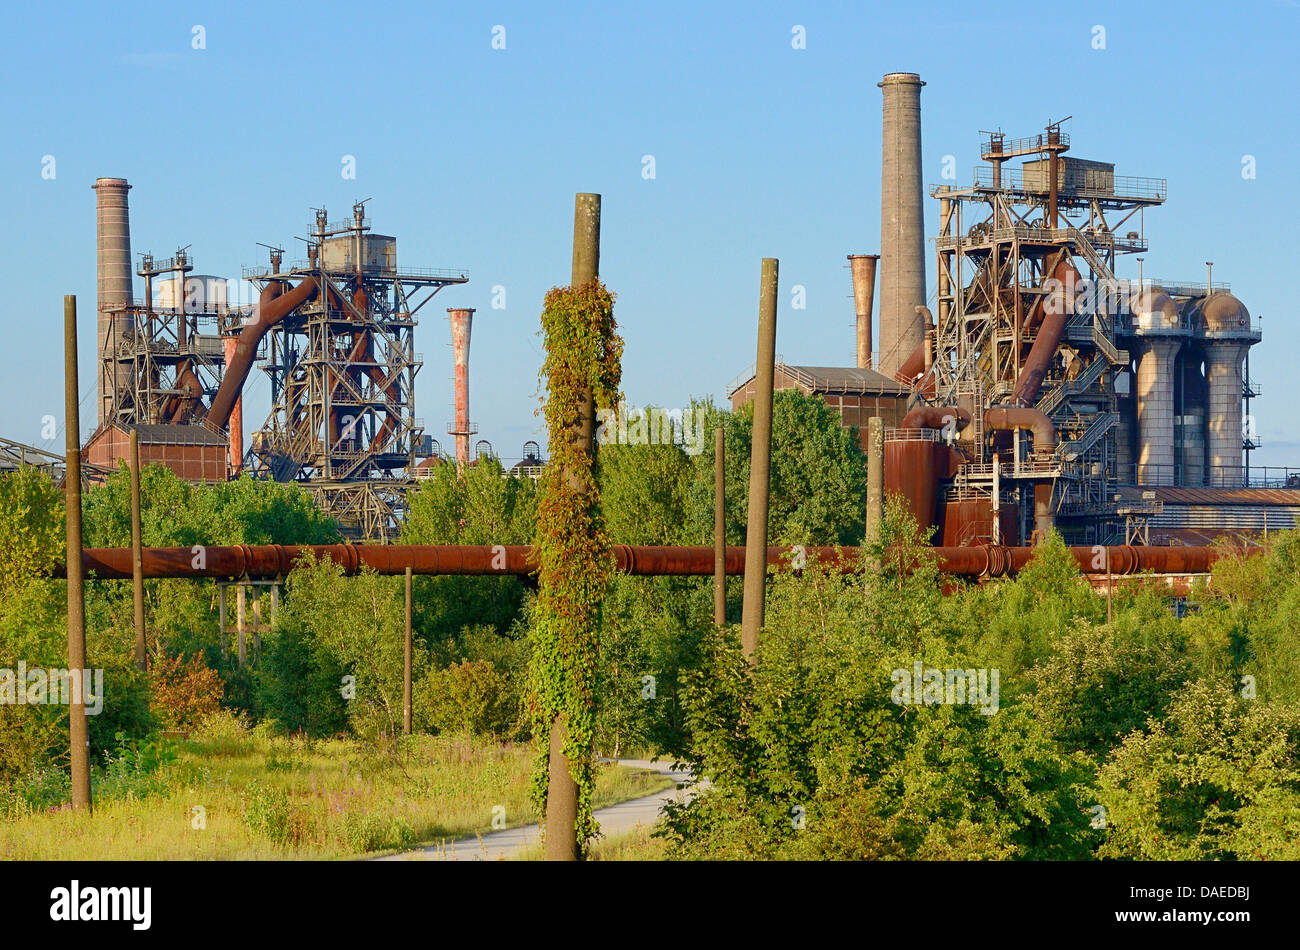 abandoned iron and steel works duisburg meiderich germany north stock photo royalty free. Black Bedroom Furniture Sets. Home Design Ideas